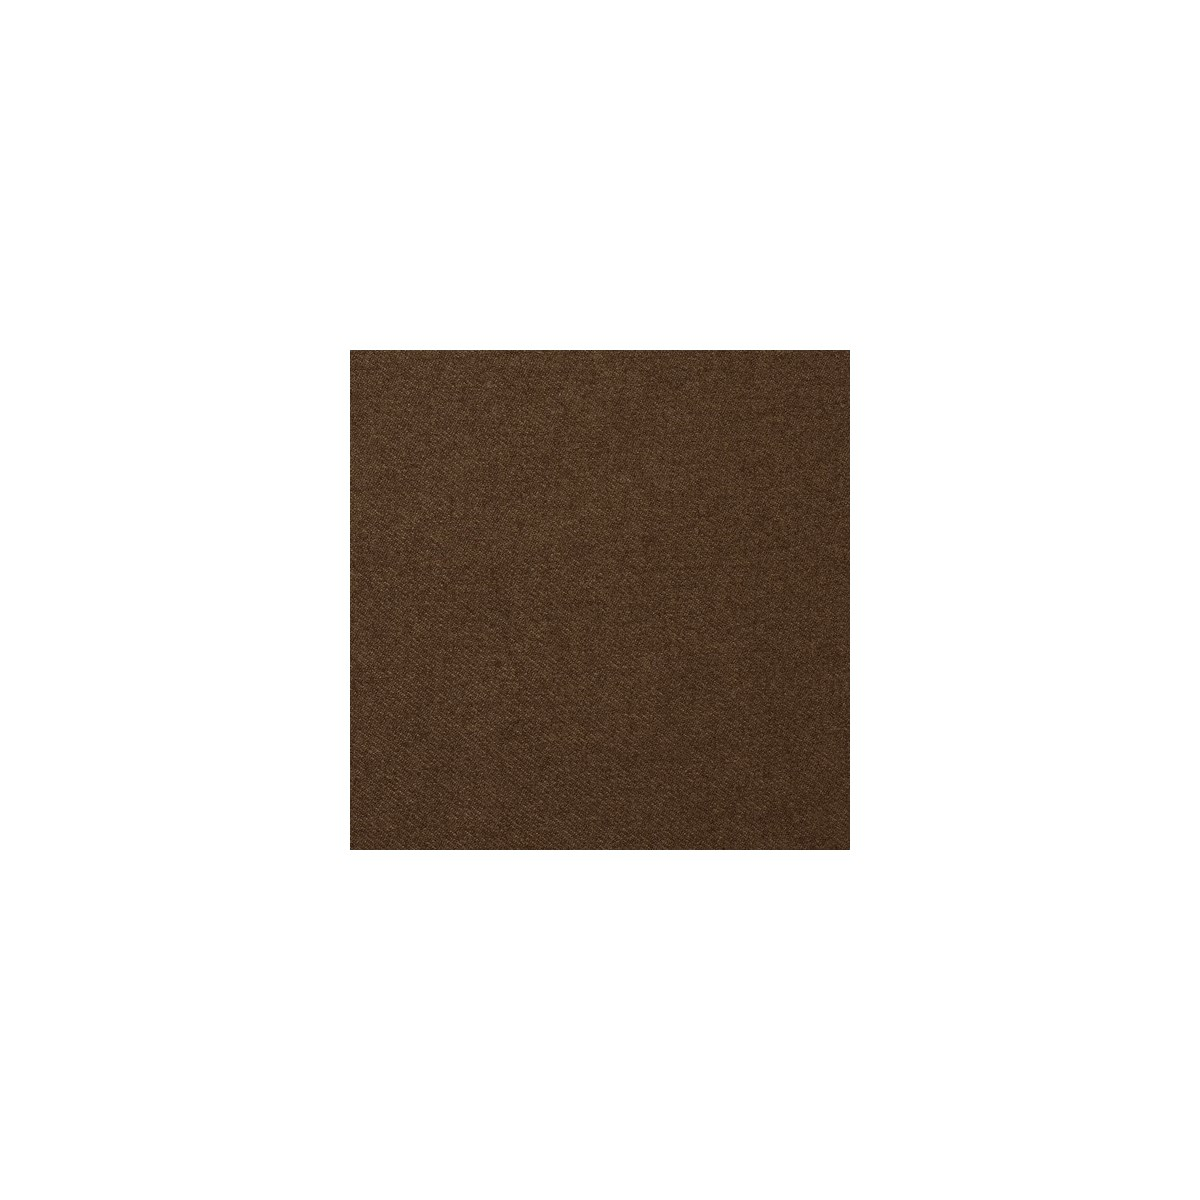 Burgess - French Roast - Fabric By the Yard